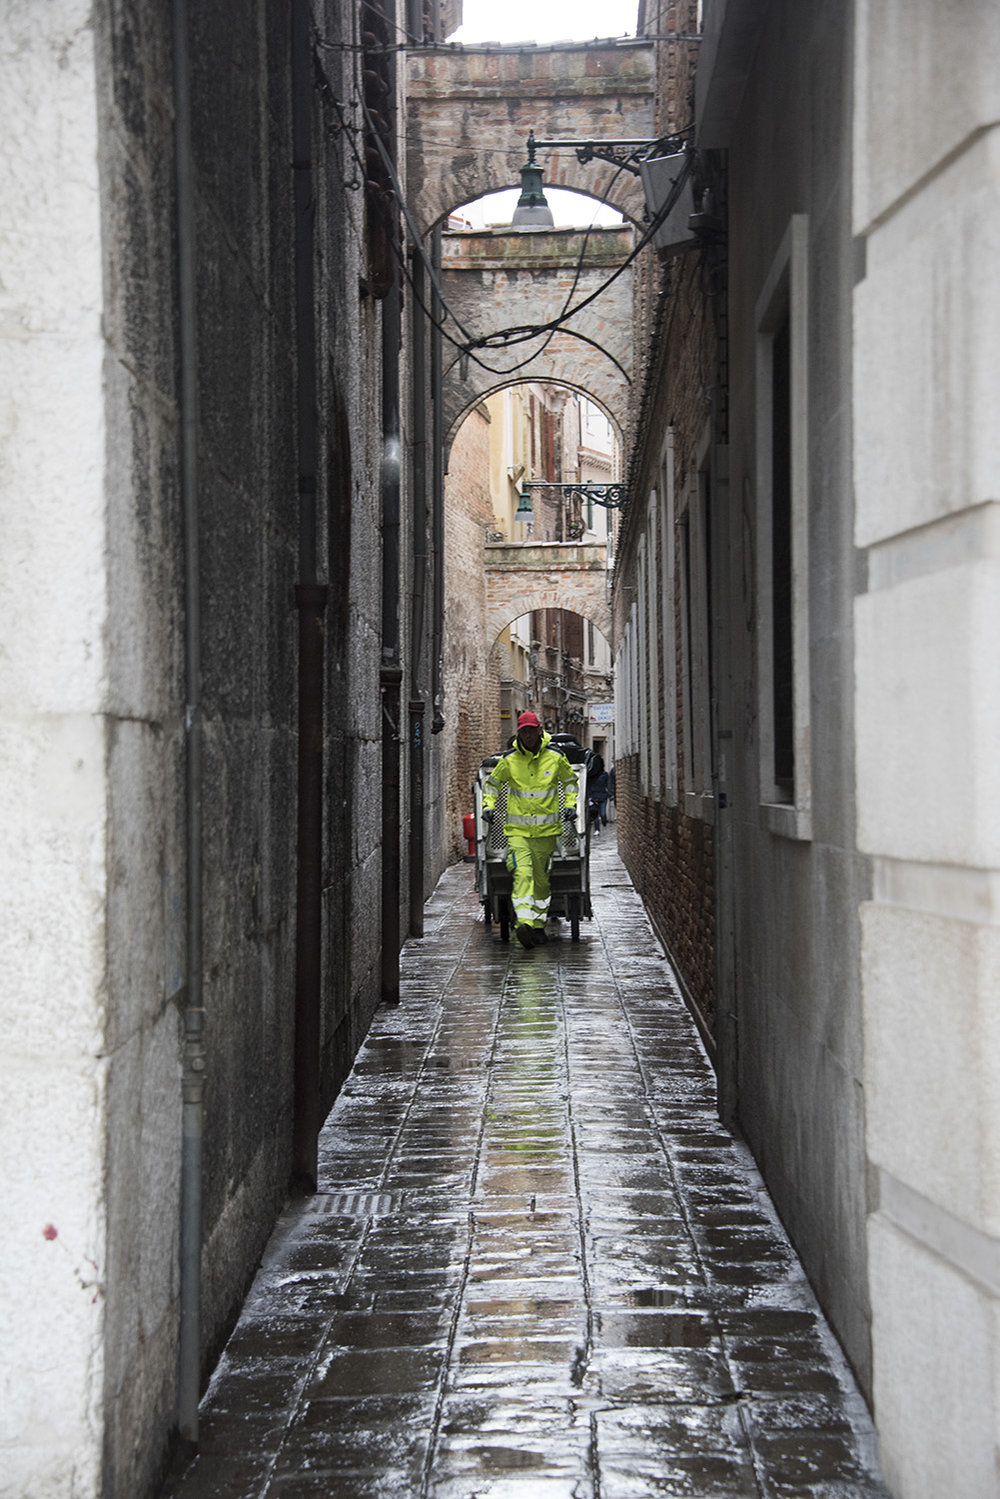 Municipality staff working to keep Venice clean - in the rain